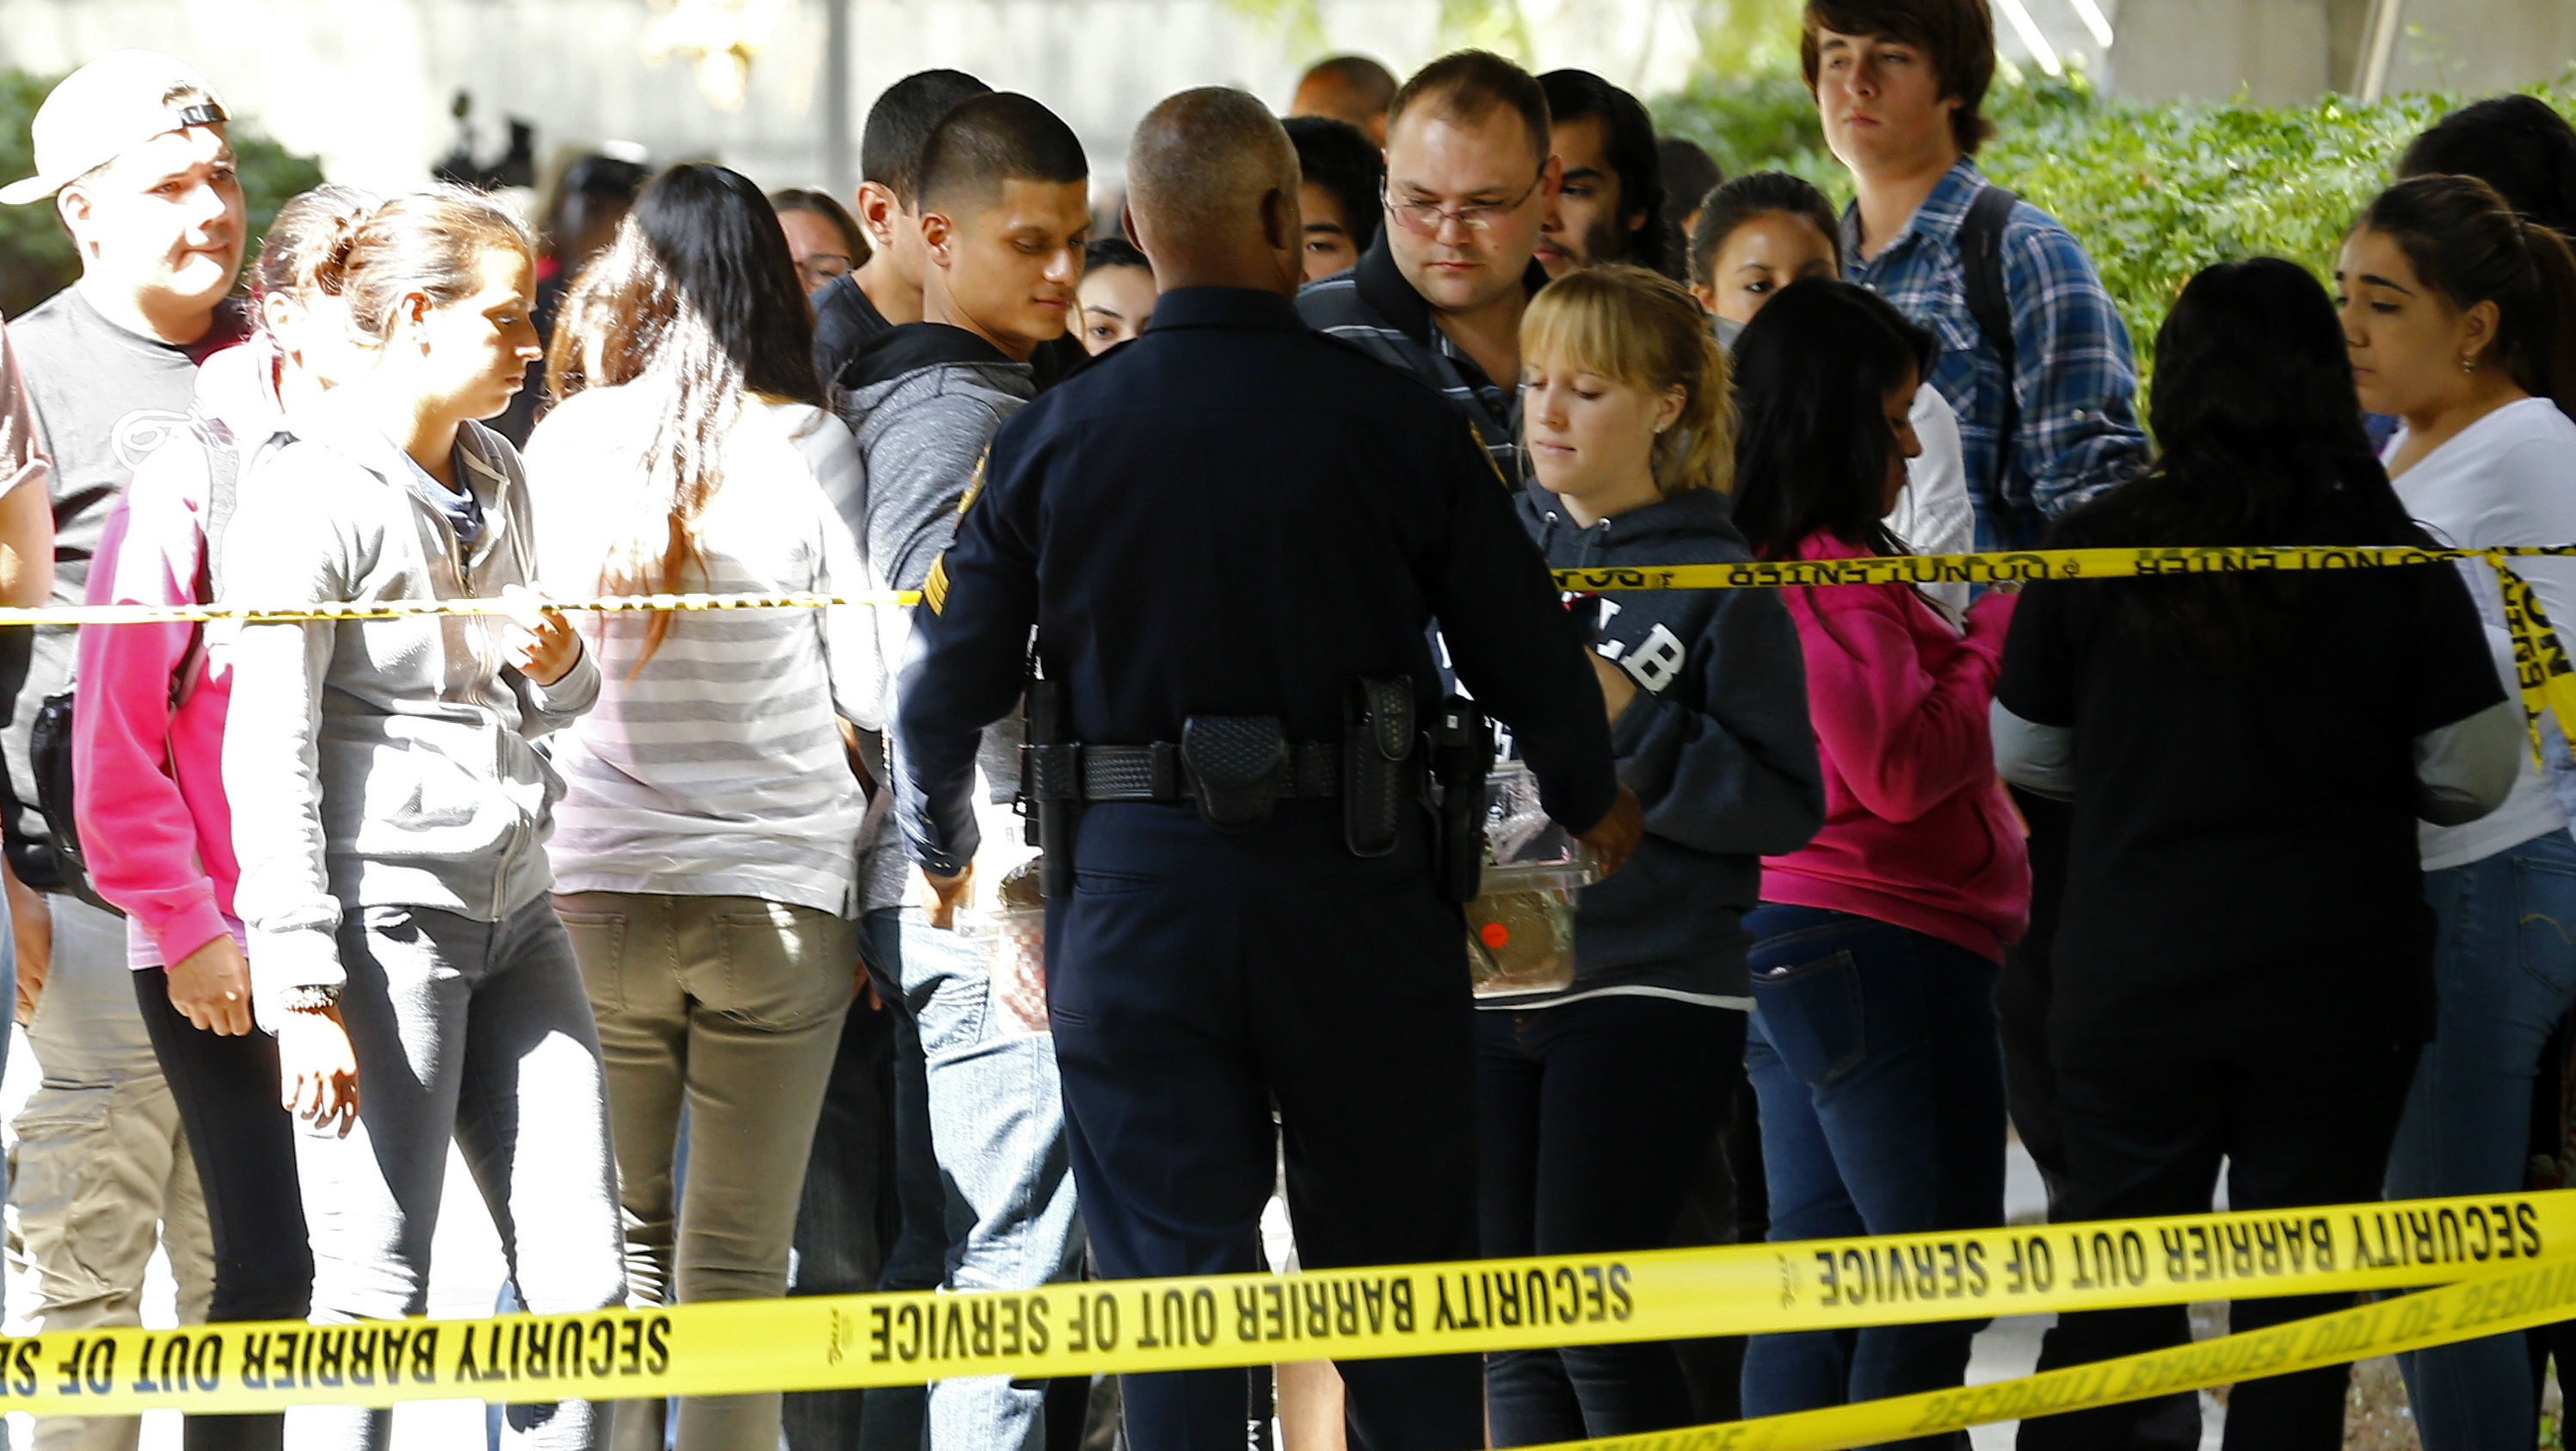 Students line up for food after being cordoned off by police and barrier tape due to an Ebola scare at Southwestern College in Chula Vista, California October 16, 2014. The abundance of caution had officials keeping students from leaving a section of the school after one of them reported her sister became sick after returning from a trip. The school later released a statement saying the student's family had travelled to the Midwest, and that a nurse had examined the student and found no symptoms resembling Ebola. REUTERS/Mike Blake